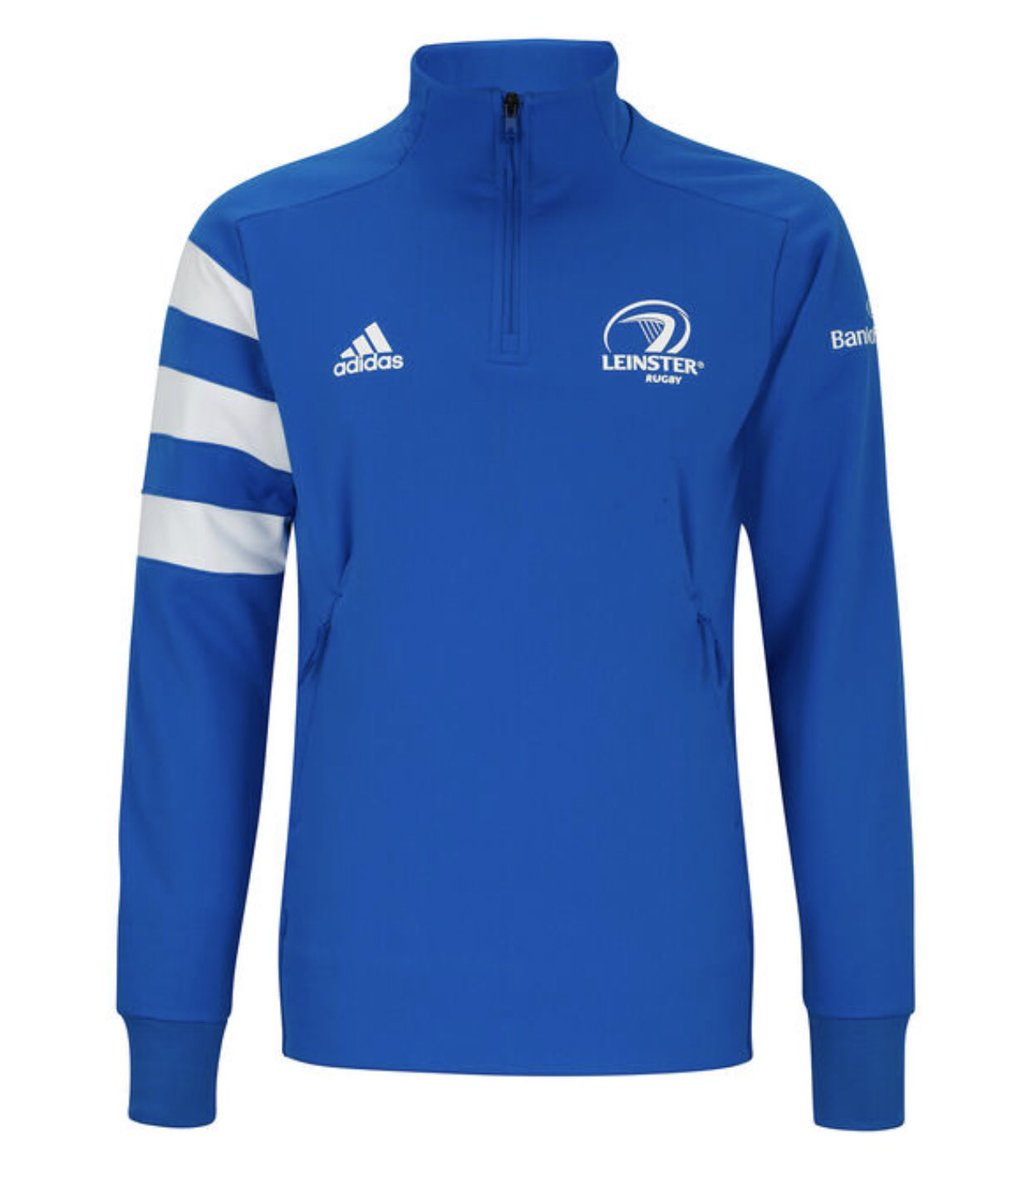 b058f5895d2 The new @leinsterrugby training range is available to pre-order on the  @lifestylesports website now! You can buy in store from 6  June...pic.twitter.com/ ...